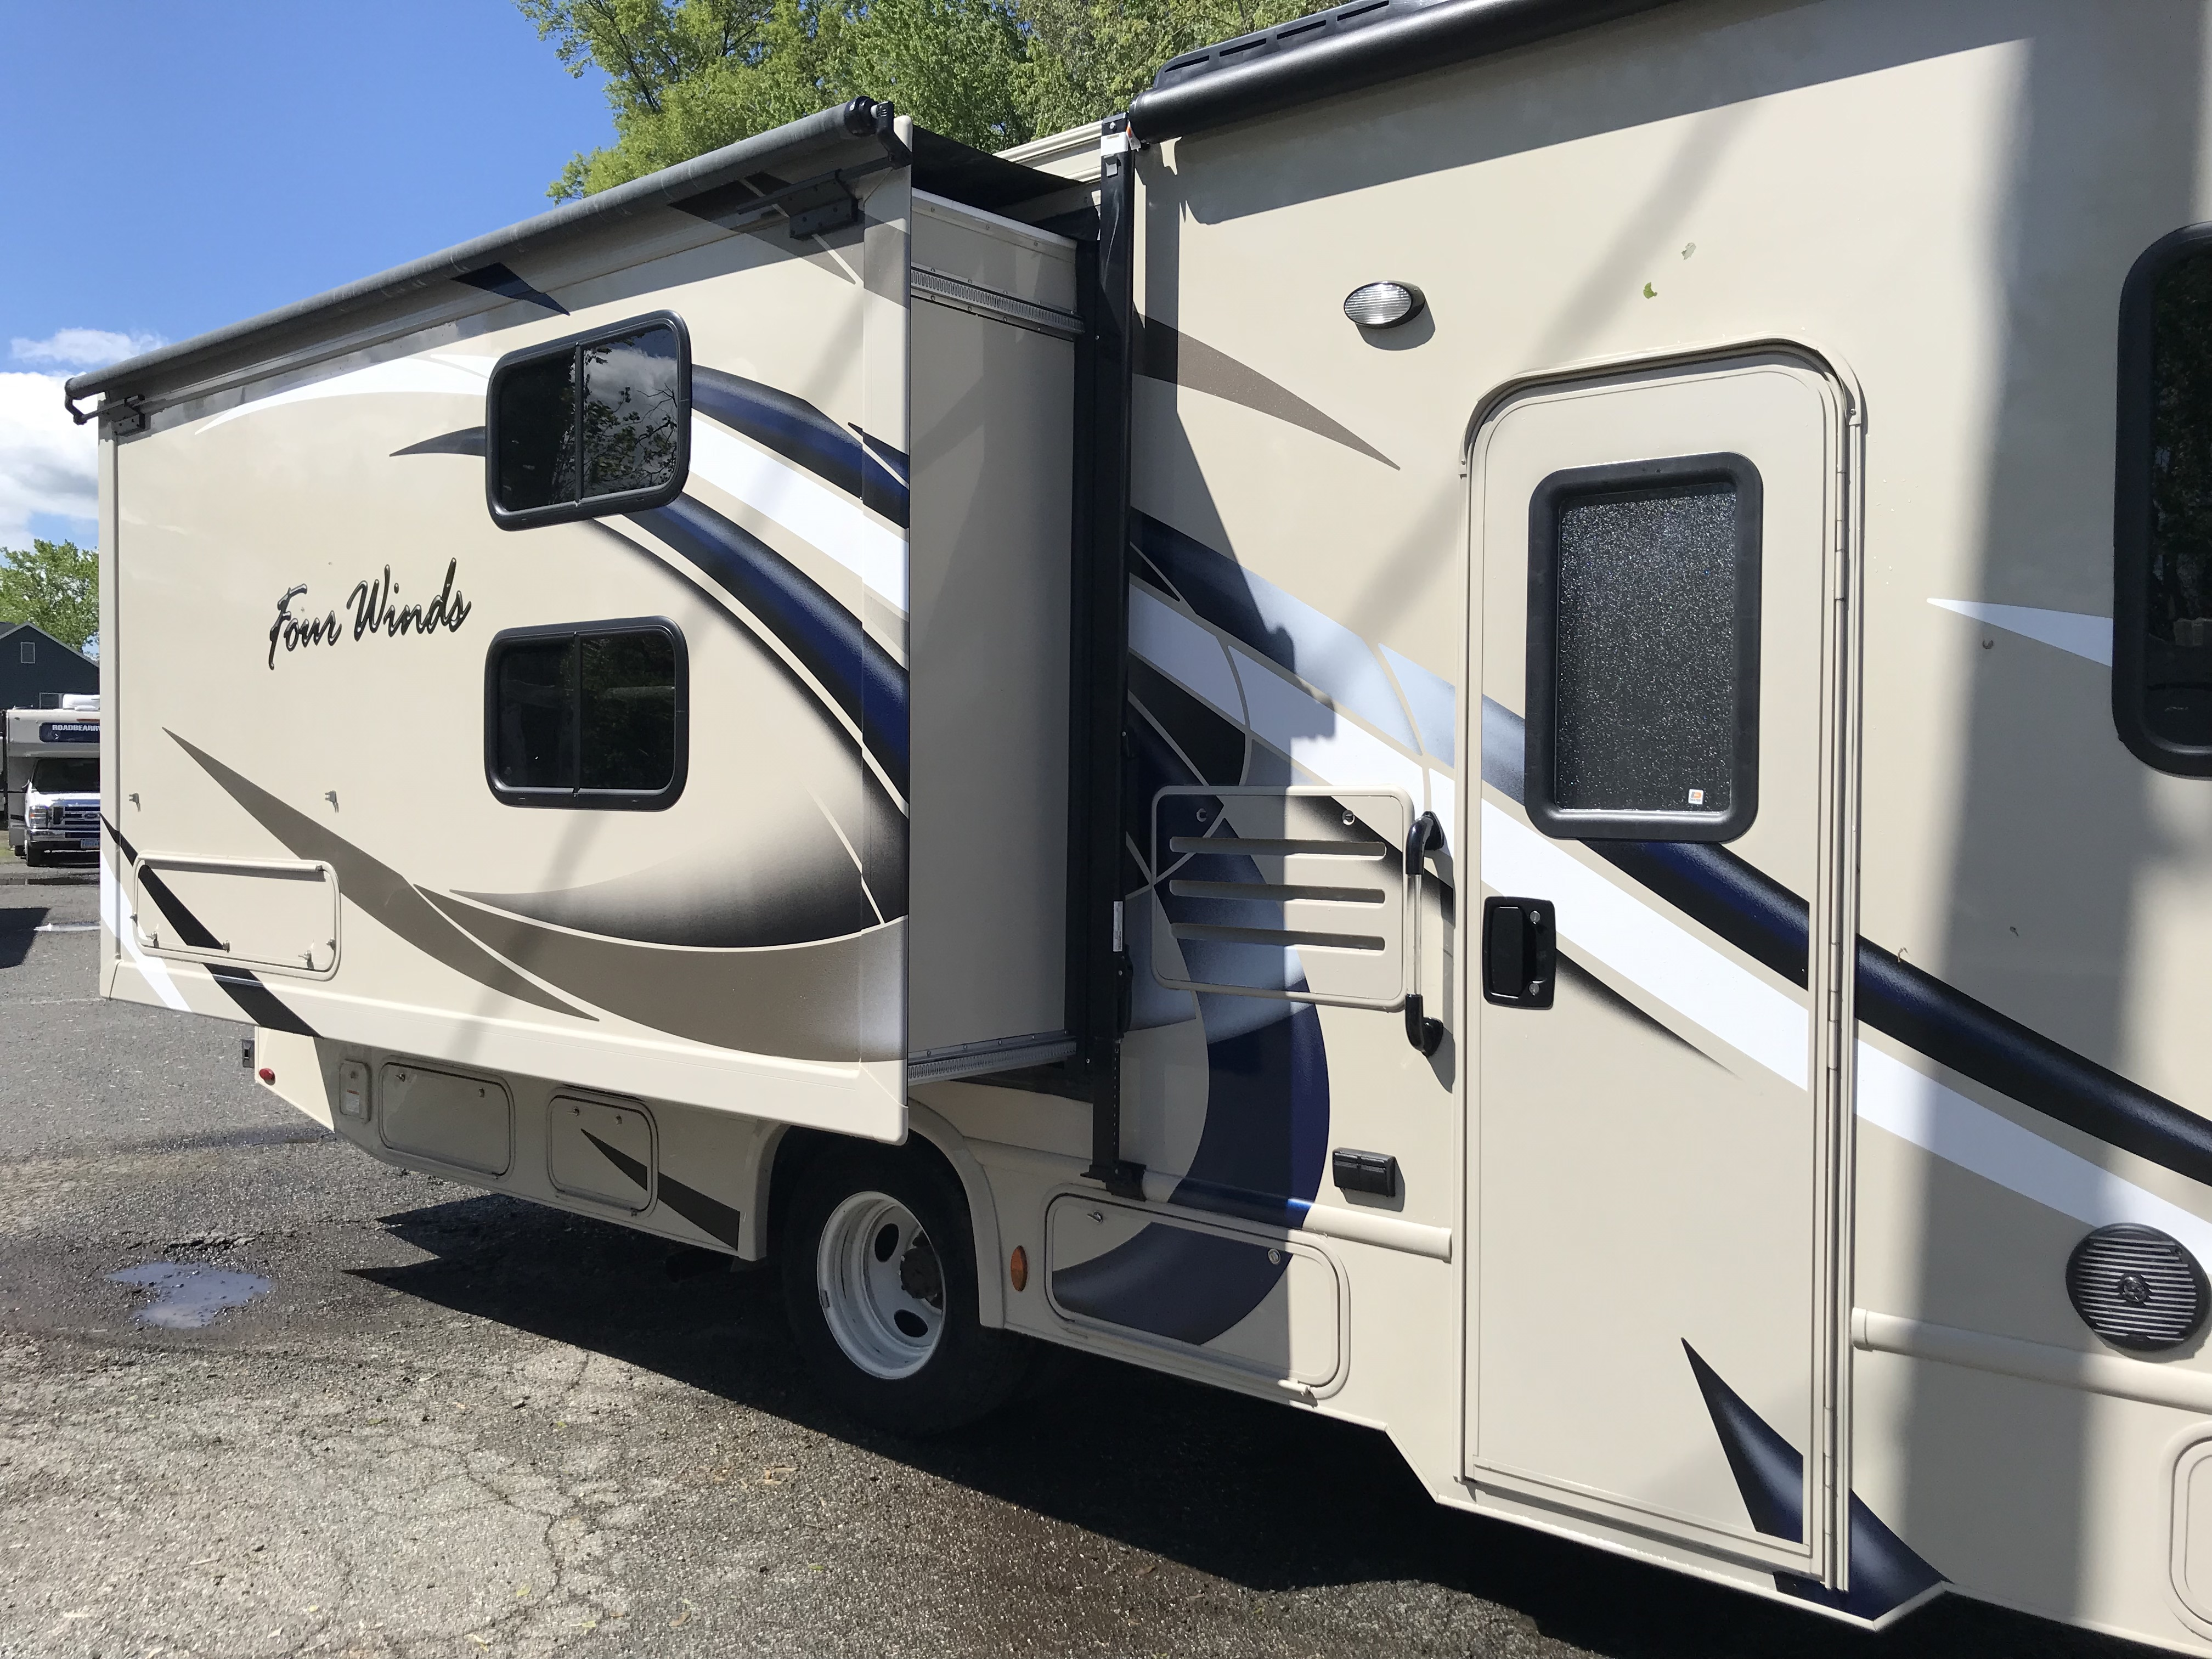 2019 Thor Motor Coach Fourwinds 30D exterior slide-out